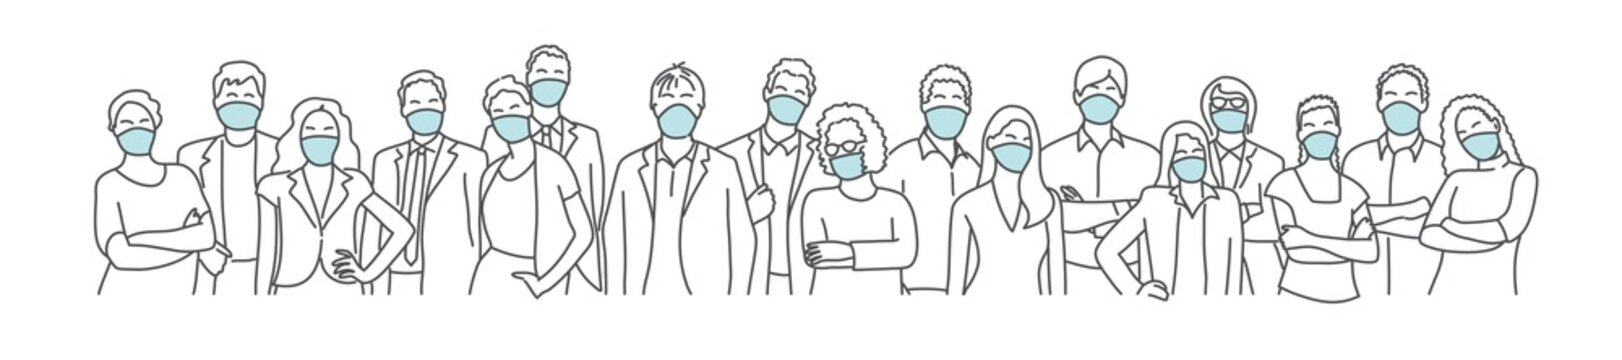 Group of people wearing medical masks to prevent disease, flu, air pollution, contaminated air. Coronavirus. Hand drawn vector illustration.